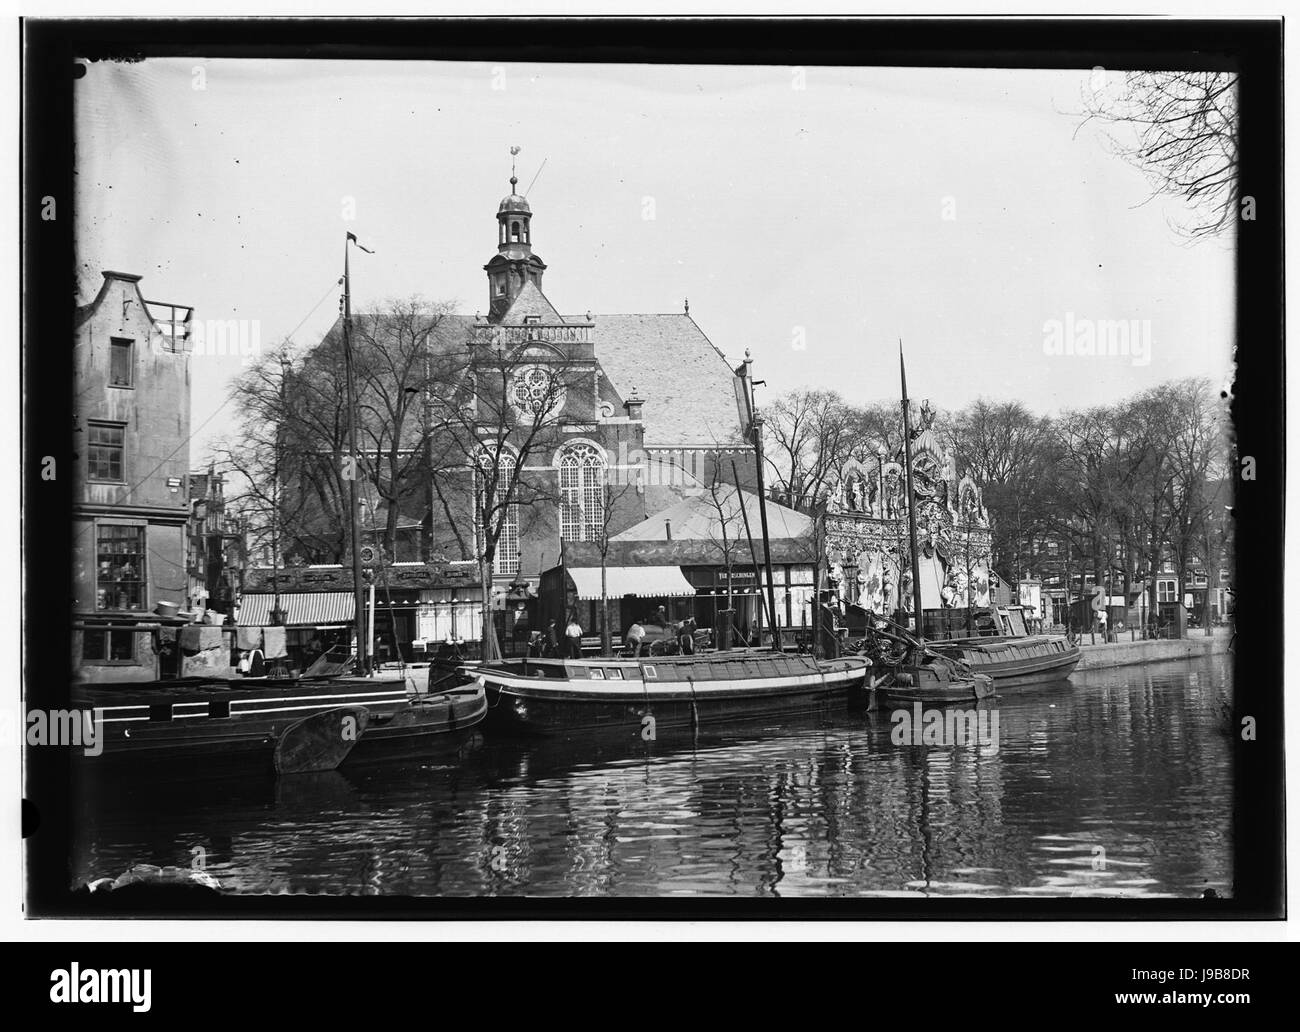 Prinsengracht 16(ged,links) Jacob Olie (max res) - Stock Image